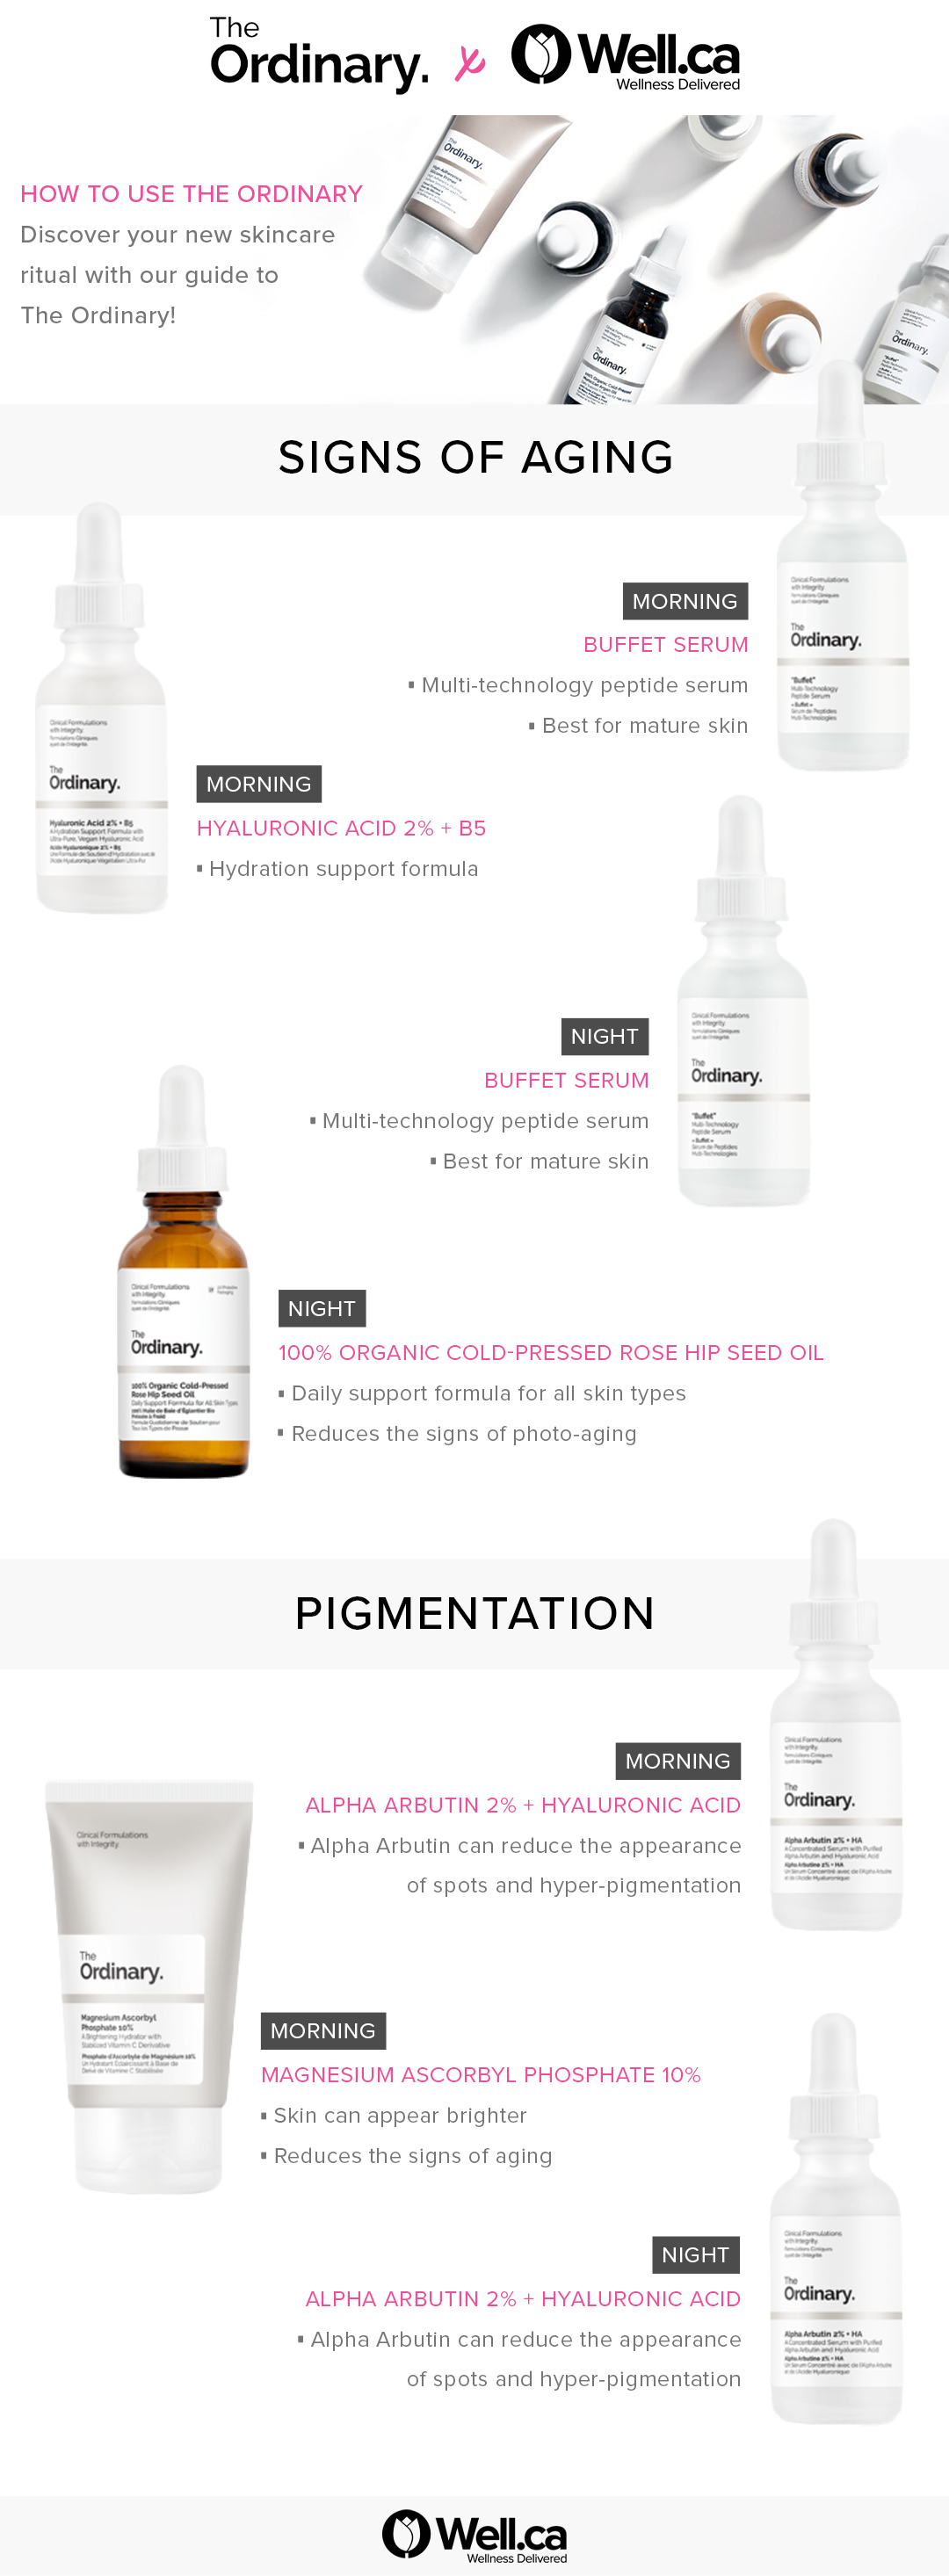 infographic describing how to use The Ordinary products